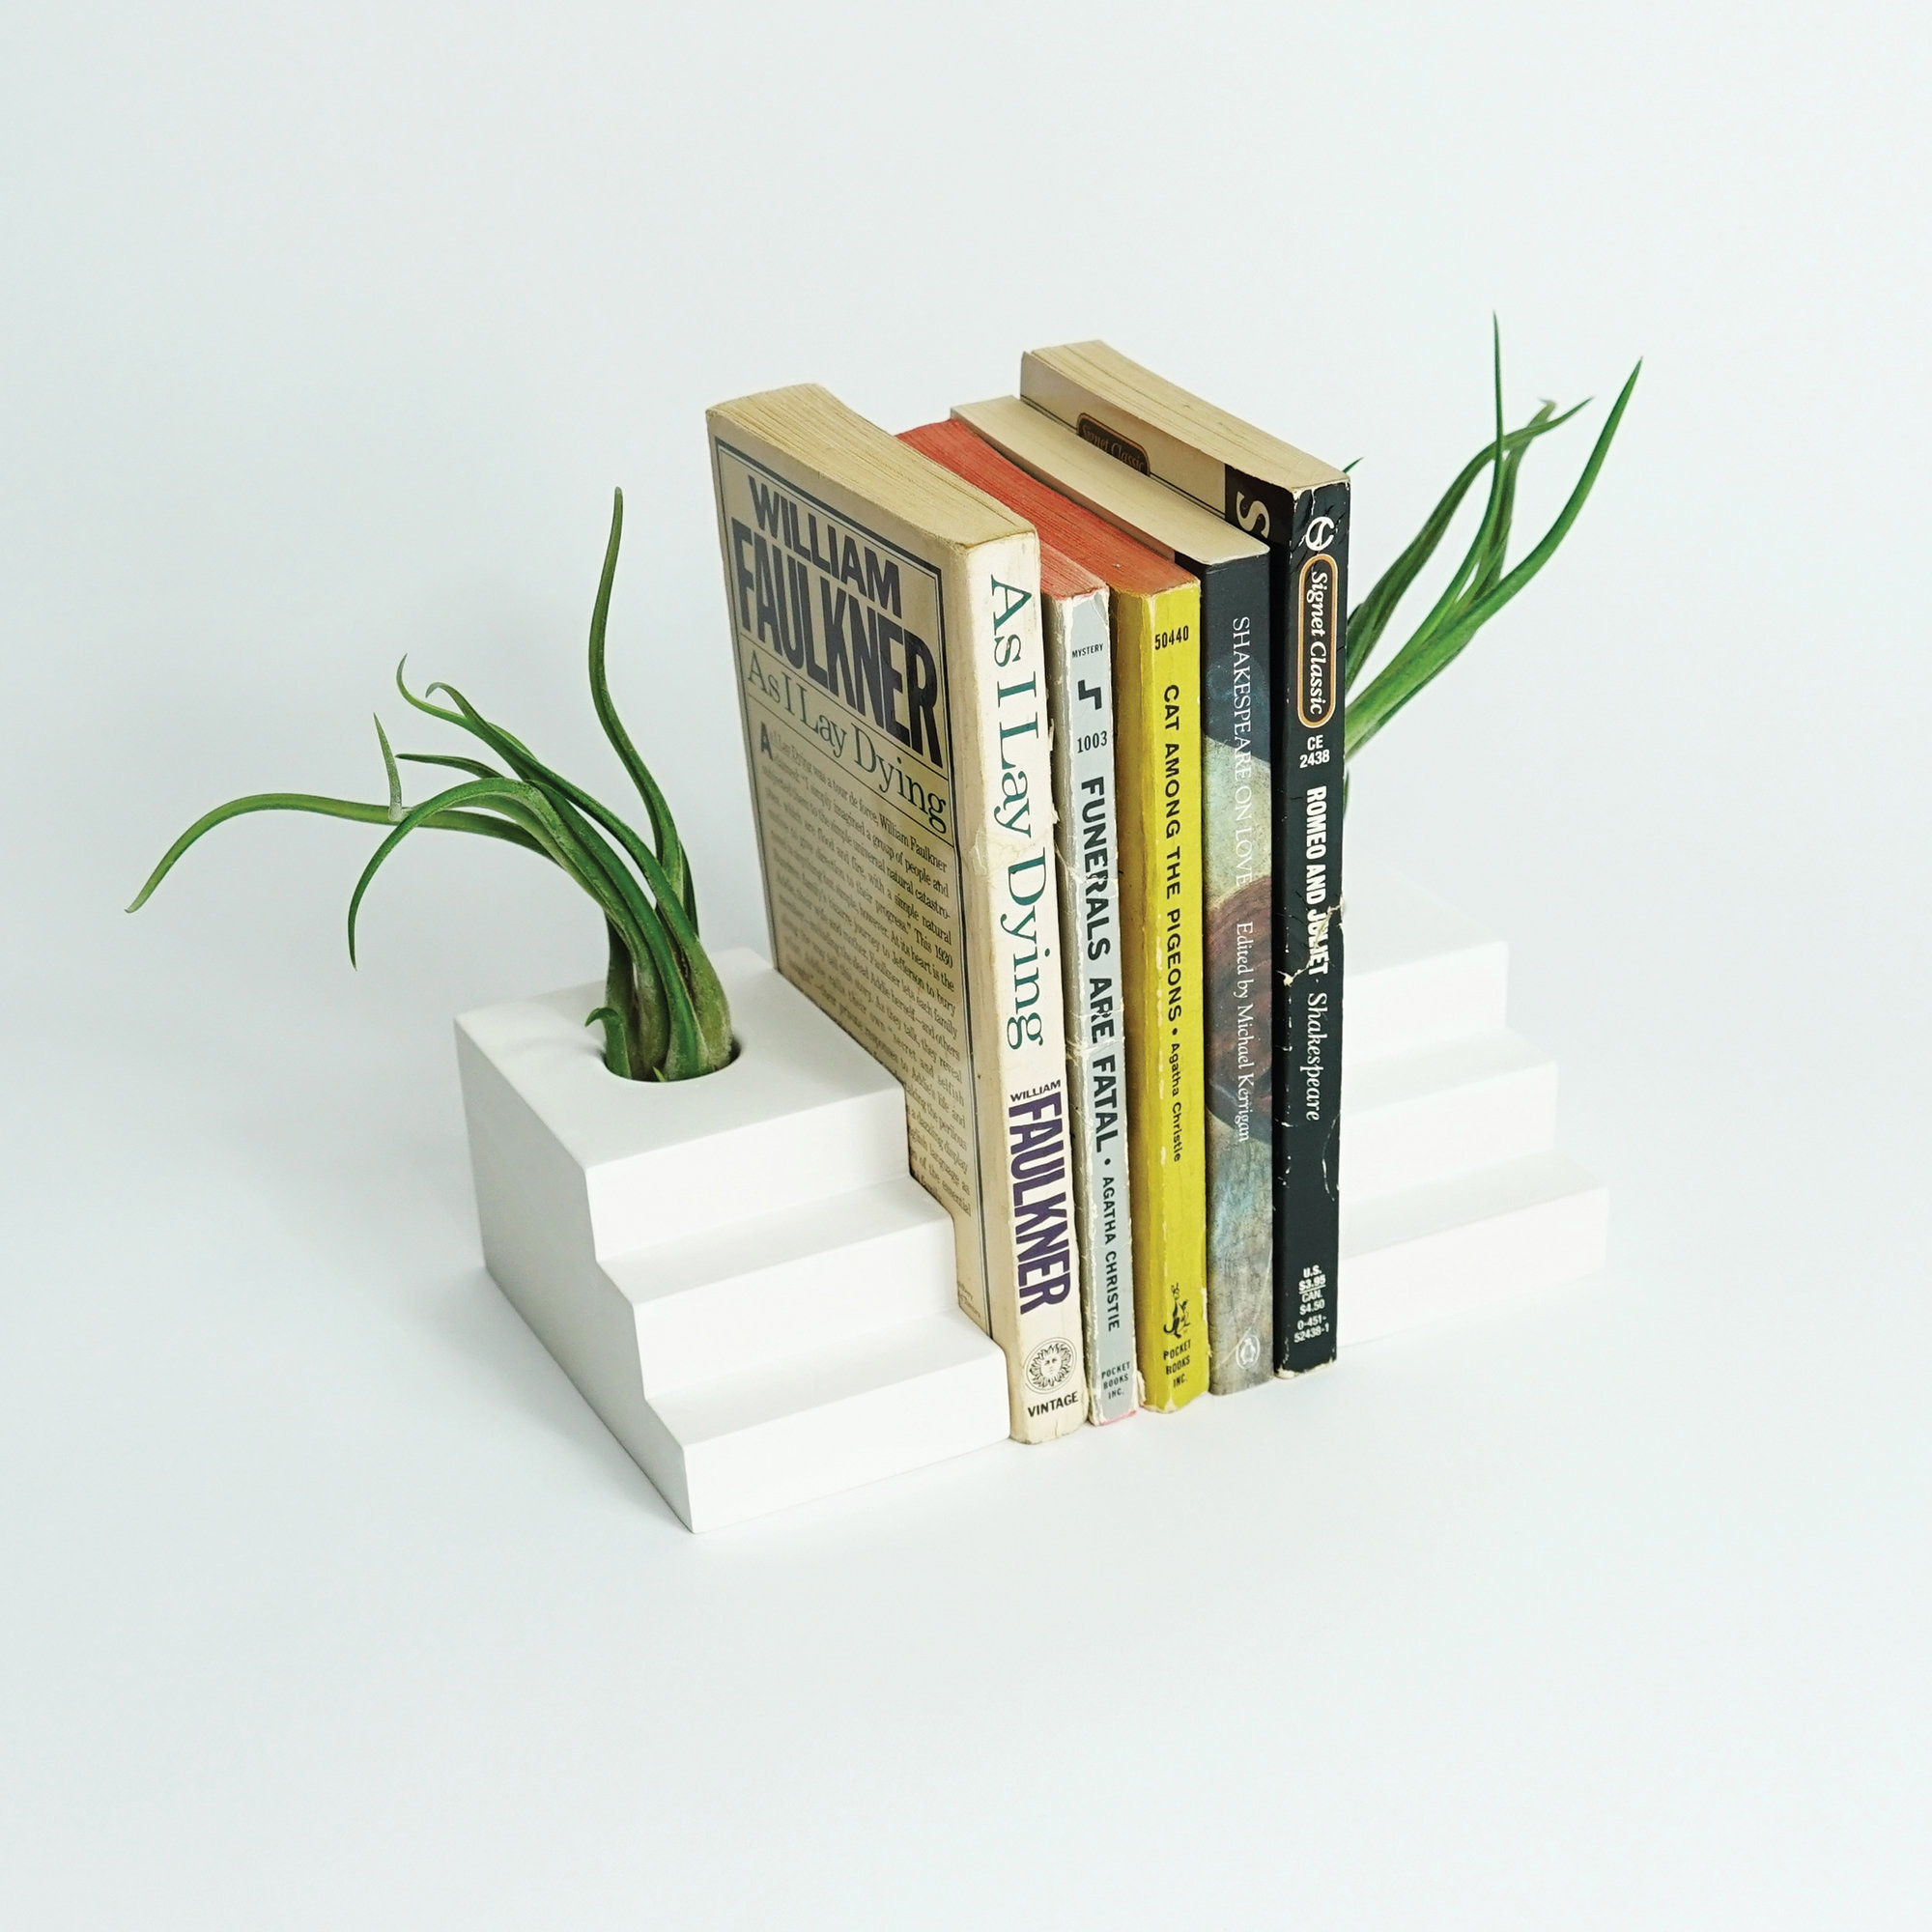 Concrete step bookends holding air plants with books